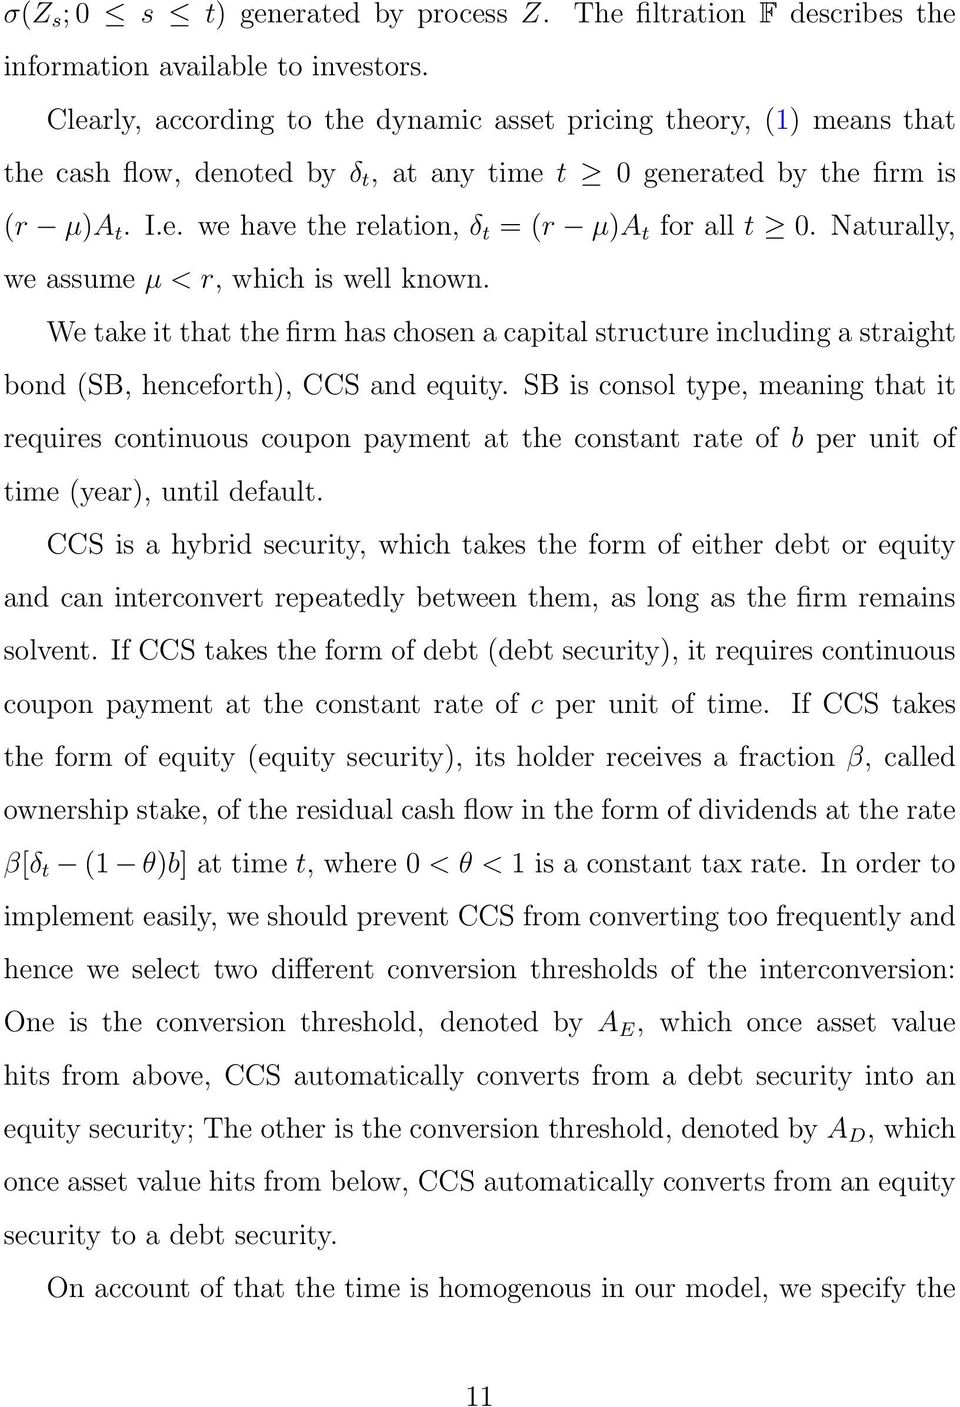 Naturally, we assume µ < r, which is well known. We take it that the firm has chosen a capital structure including a straight bond (SB, henceforth), CCS and equity.